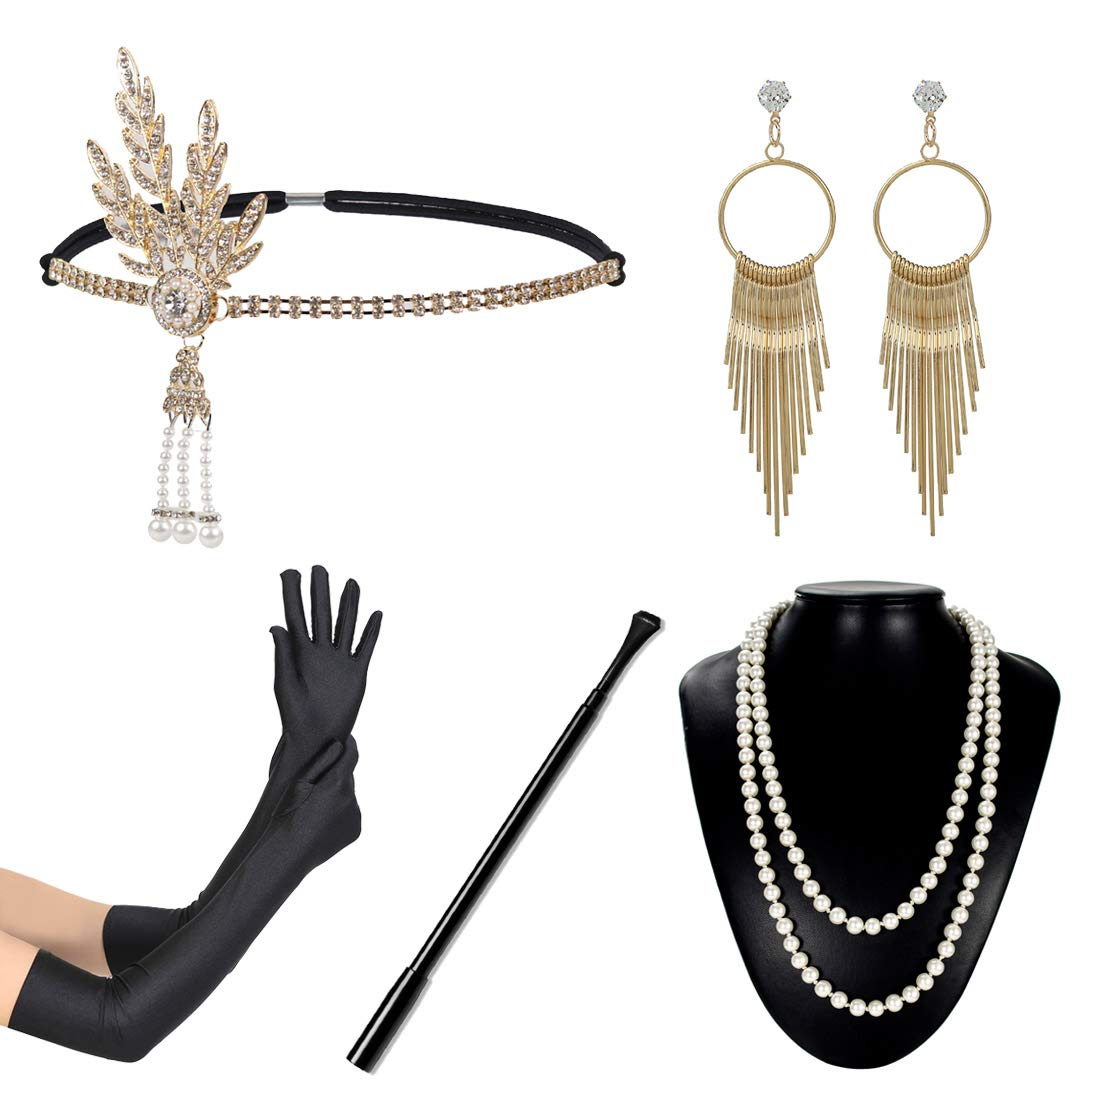 1920s Flapper Accessories Set Women Vintage Headband Necklace Gloves Cigar Holder Earrings Gatsby Costume for Roaring 20s Party Prom